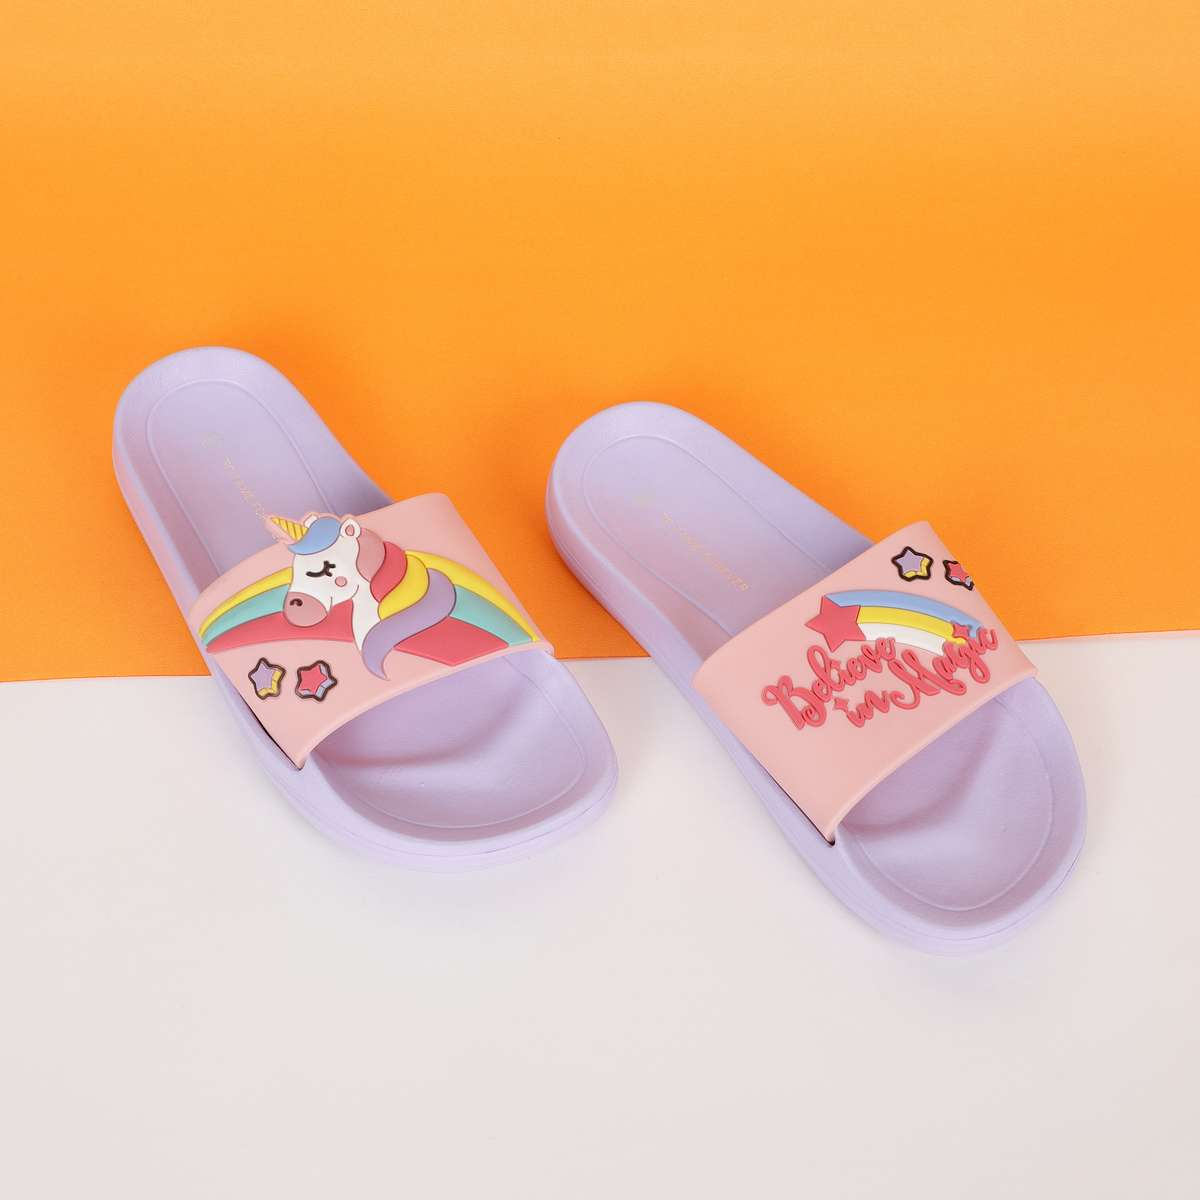 3.FAME FOREVER Girls Unicorn Applique Sliders